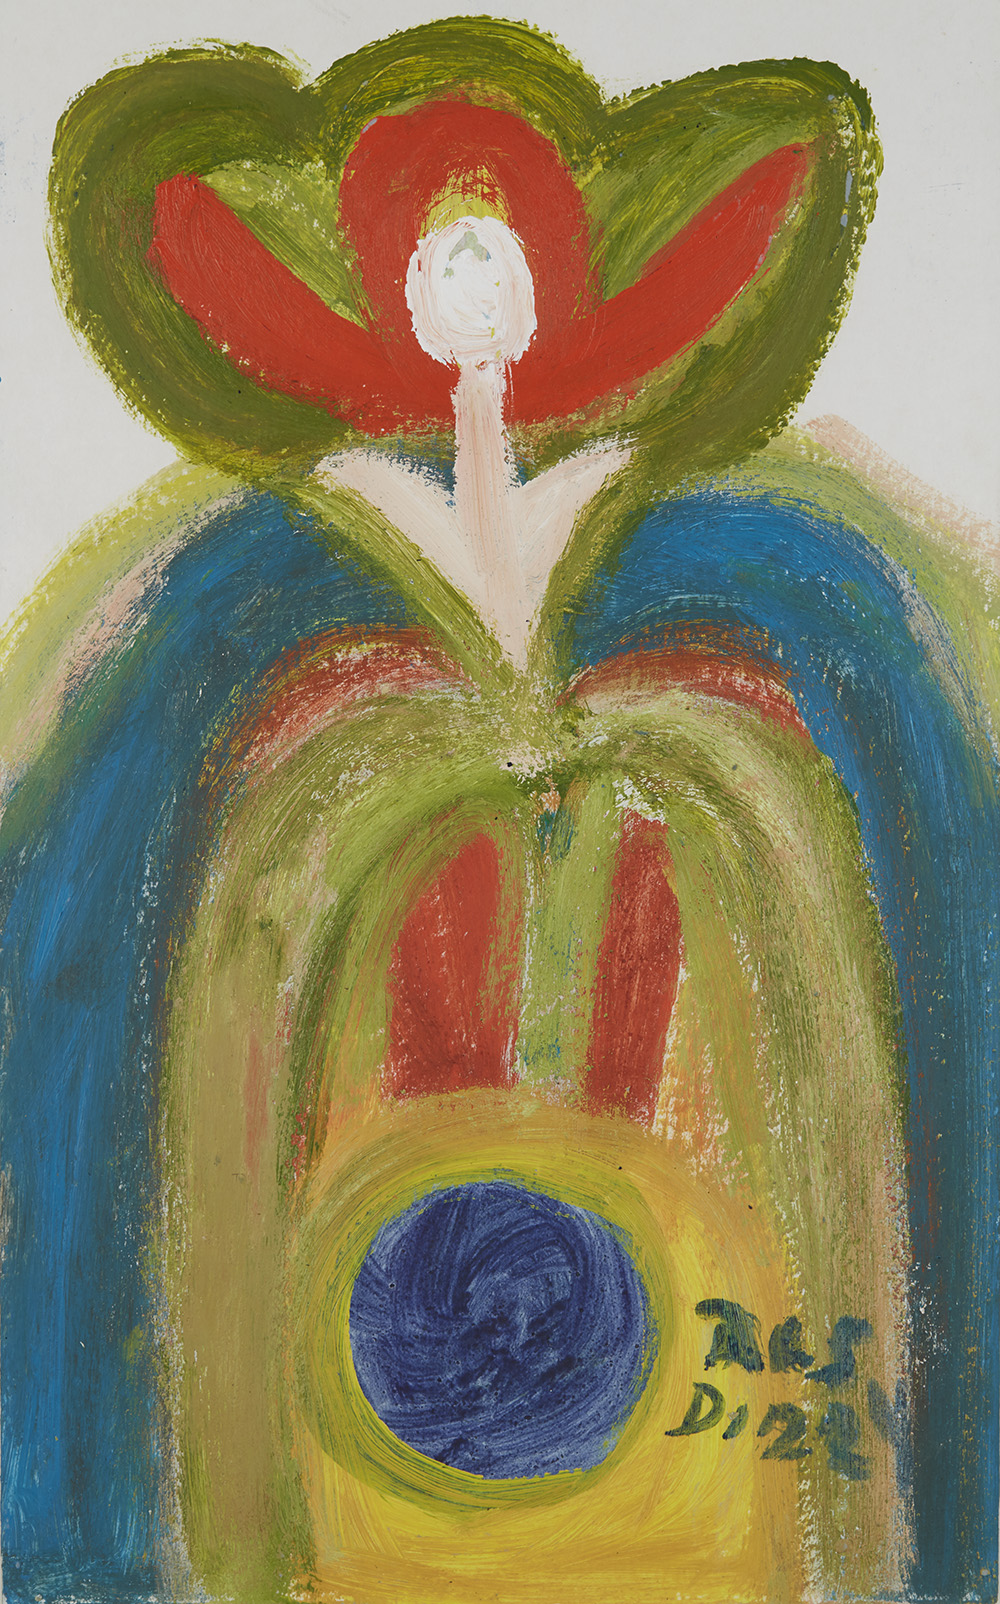 Ras Dizzy Rose Choice, 1997 Tempera on matboard 16.75 x 10.5 inches 42.5 x 26.7 cm RD 46